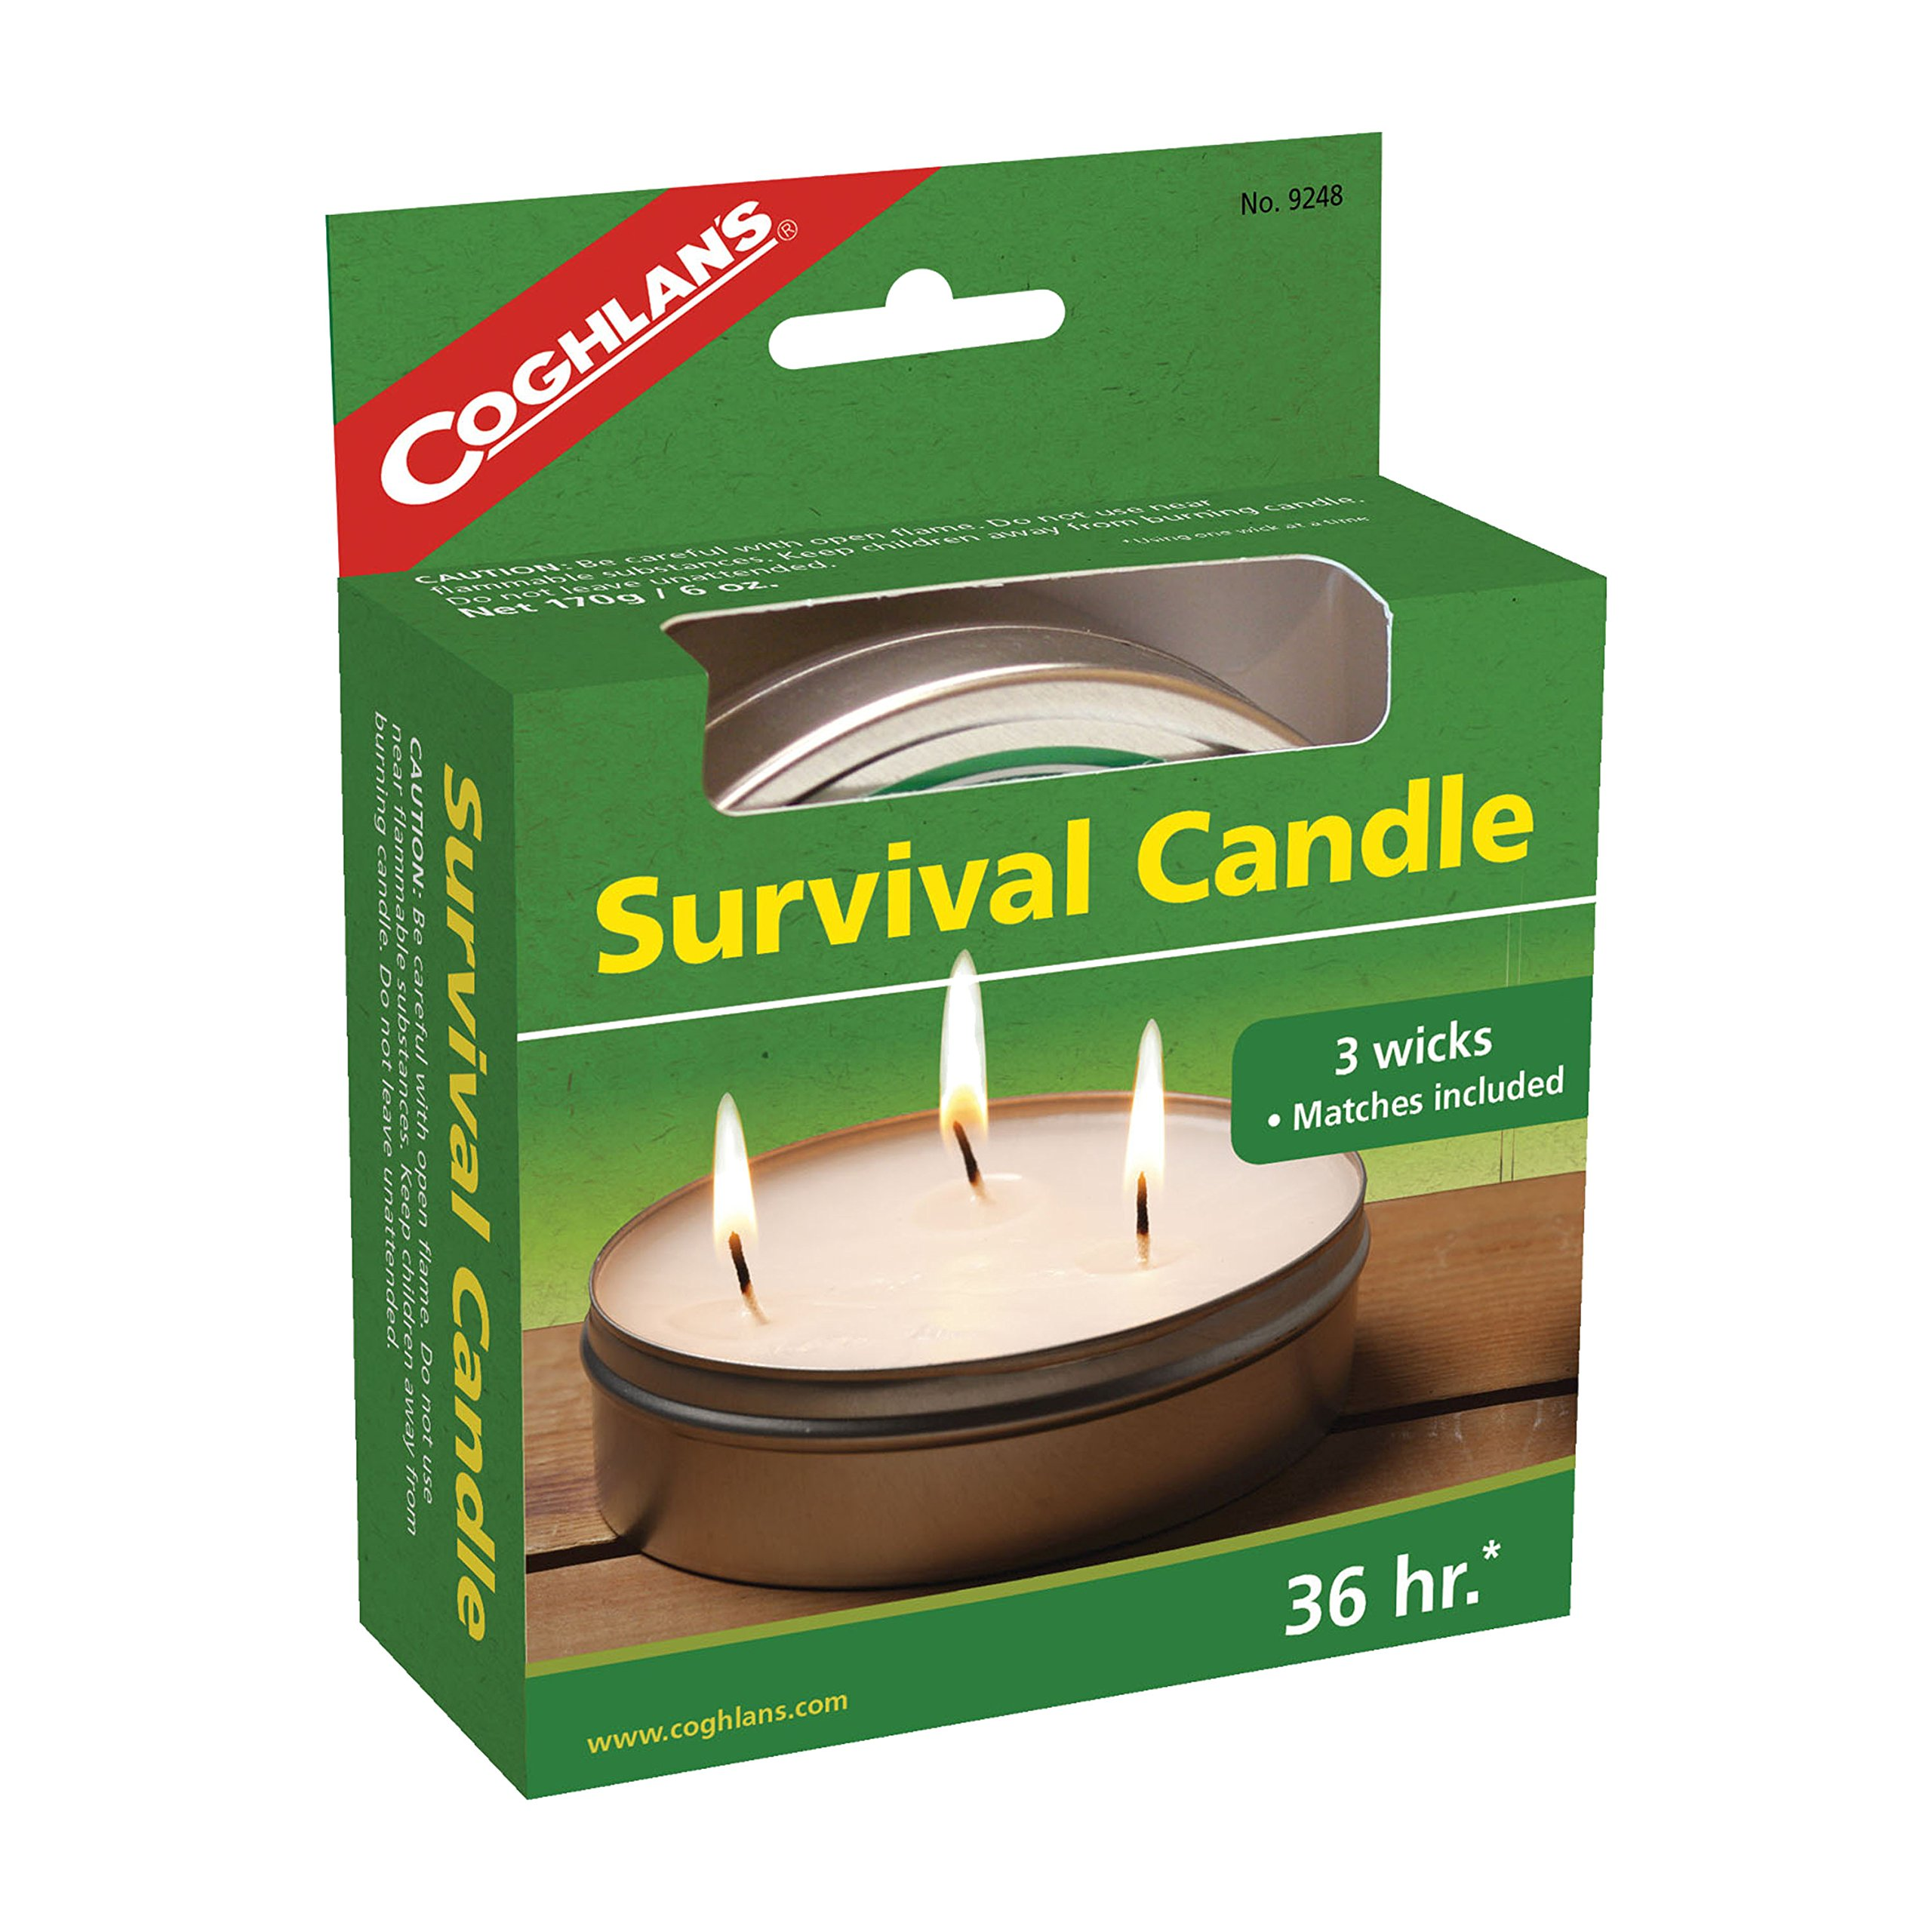 Coghlans 36 HOURS SURVIVAL CANDLE,6 OZ (2 Pack)